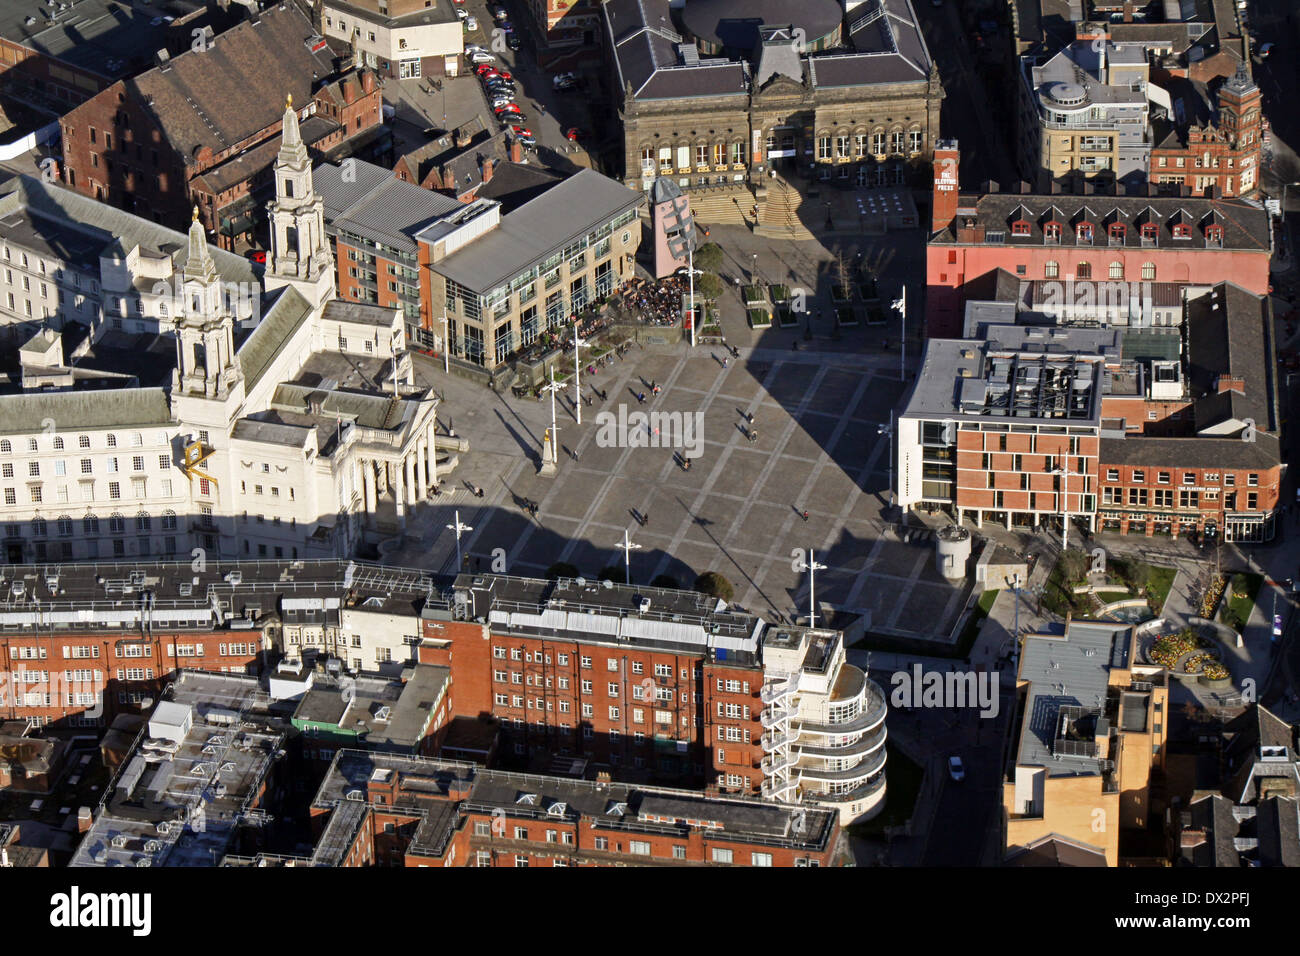 aerial view of Millennium Square in Leeds with Leeds Civic Hall - Stock Image